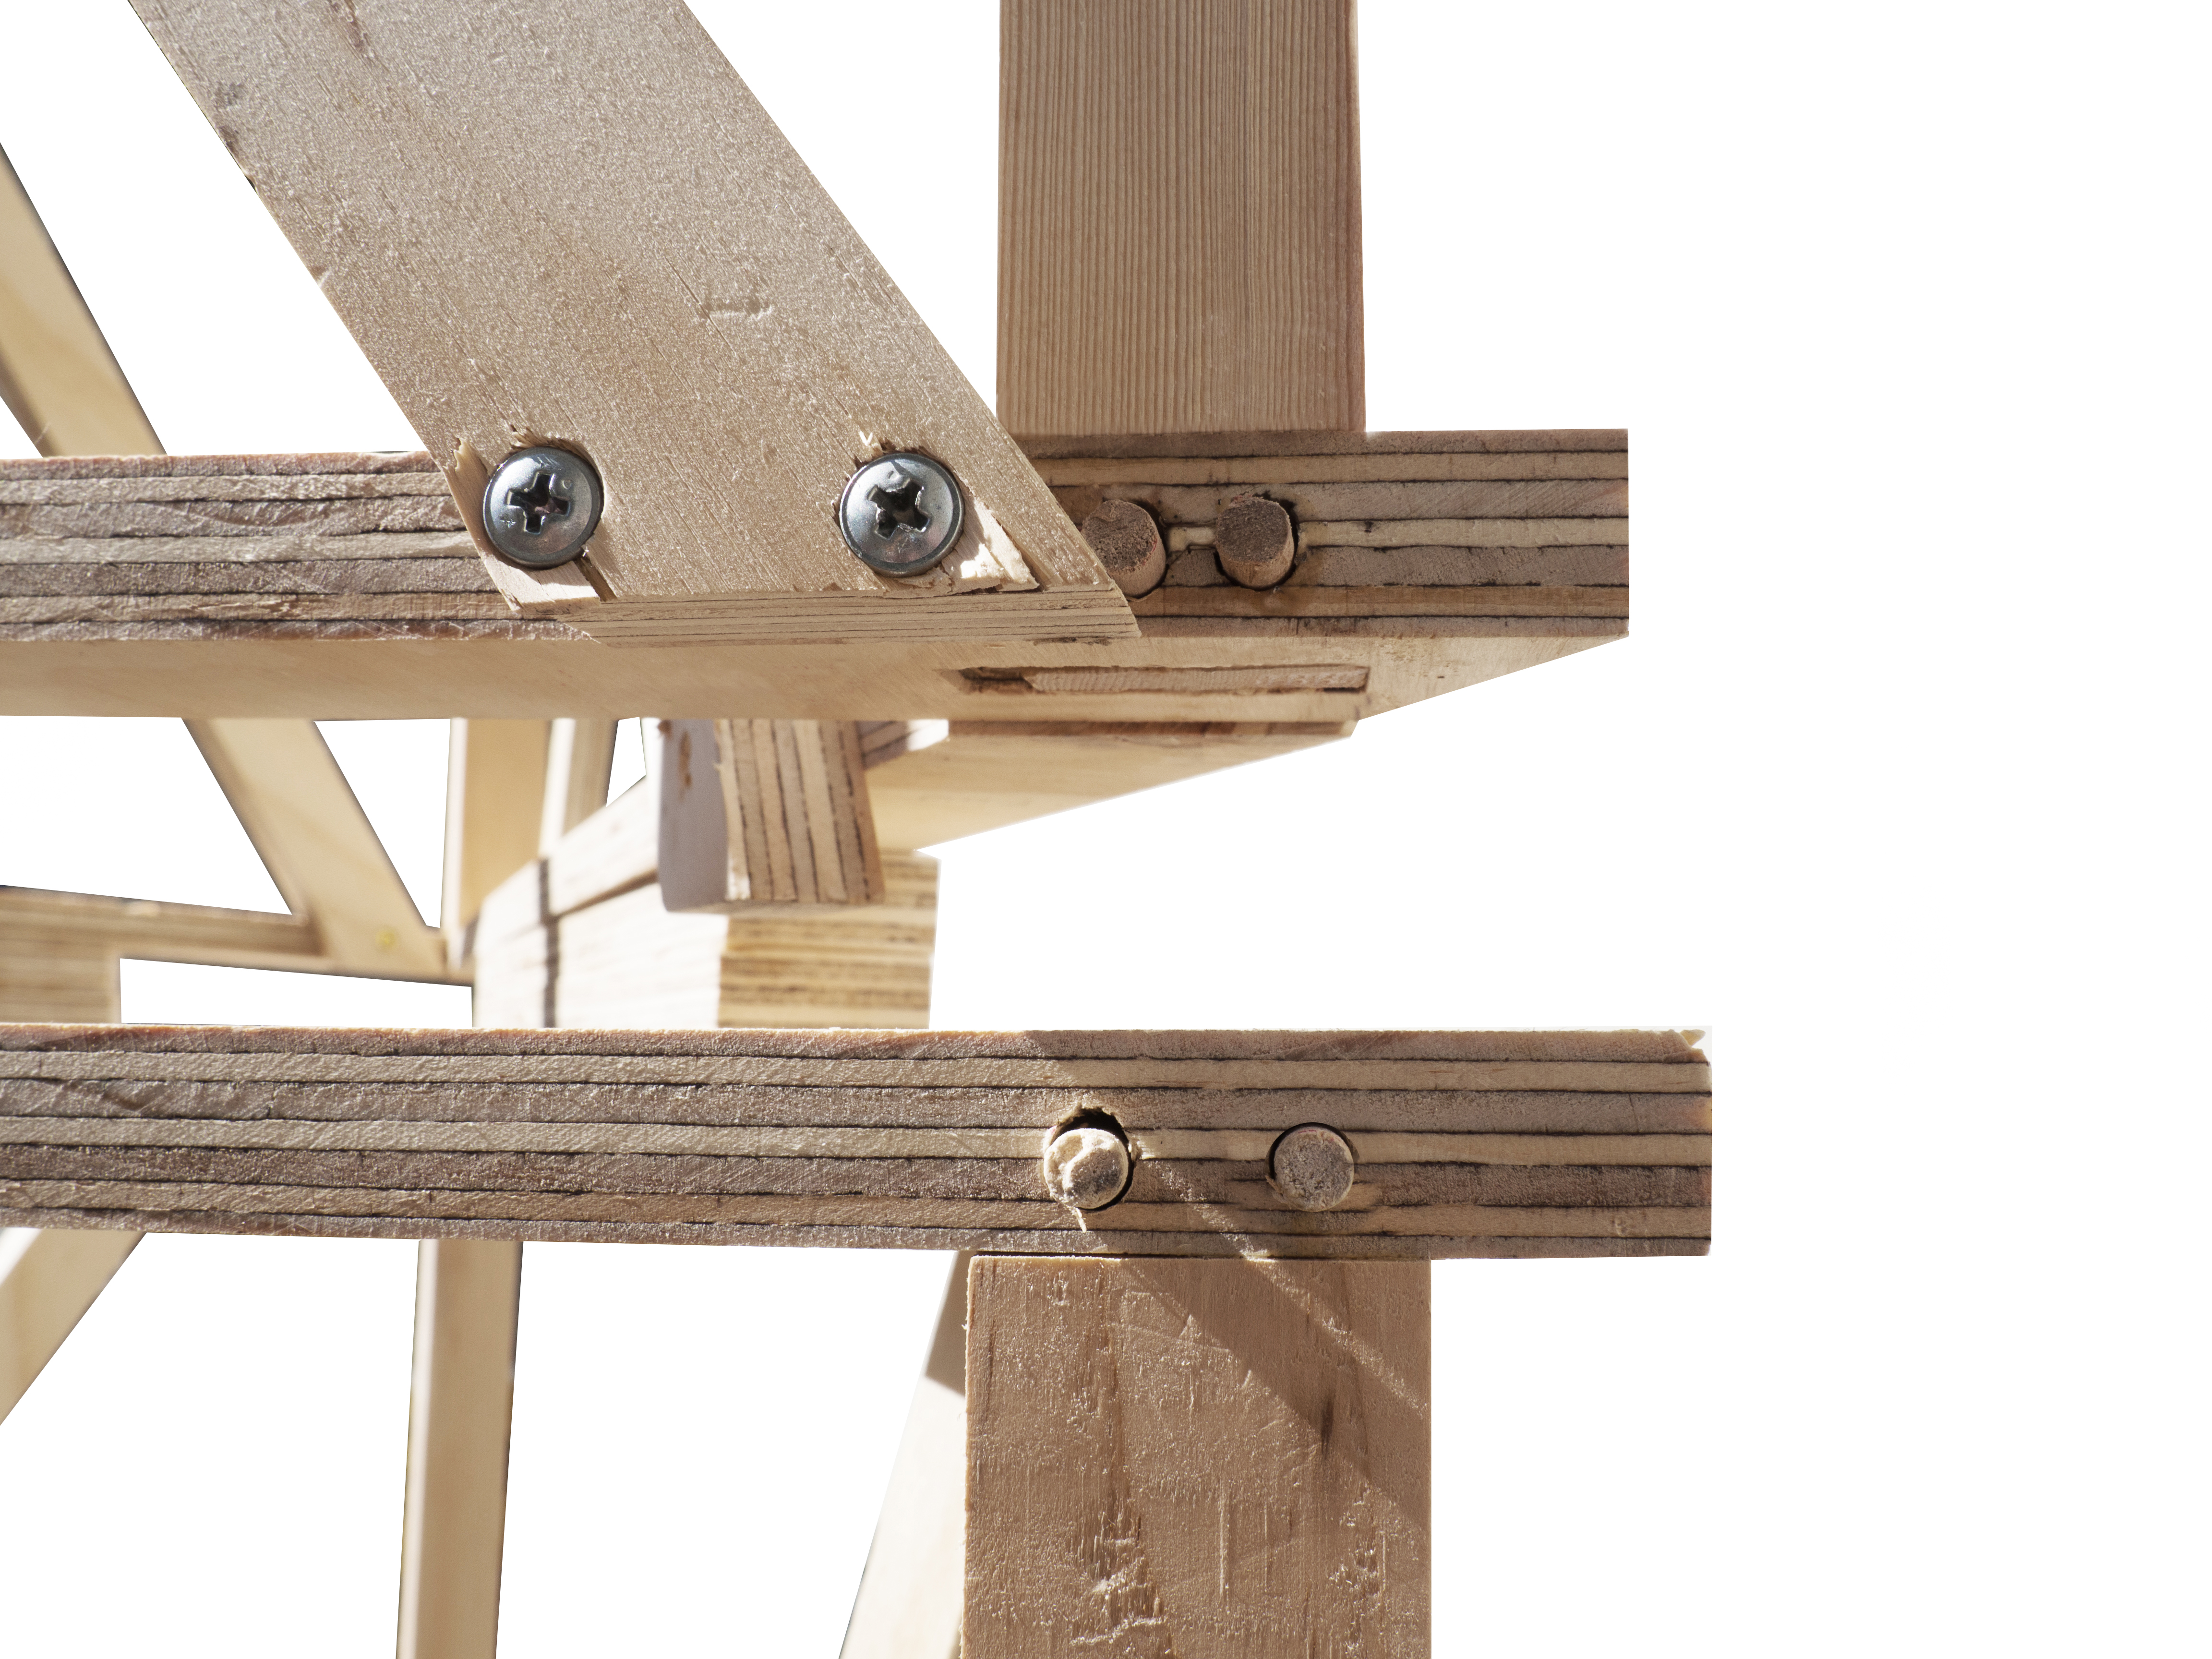 ARCH 160 (Wood Tower) | mypersonalsite